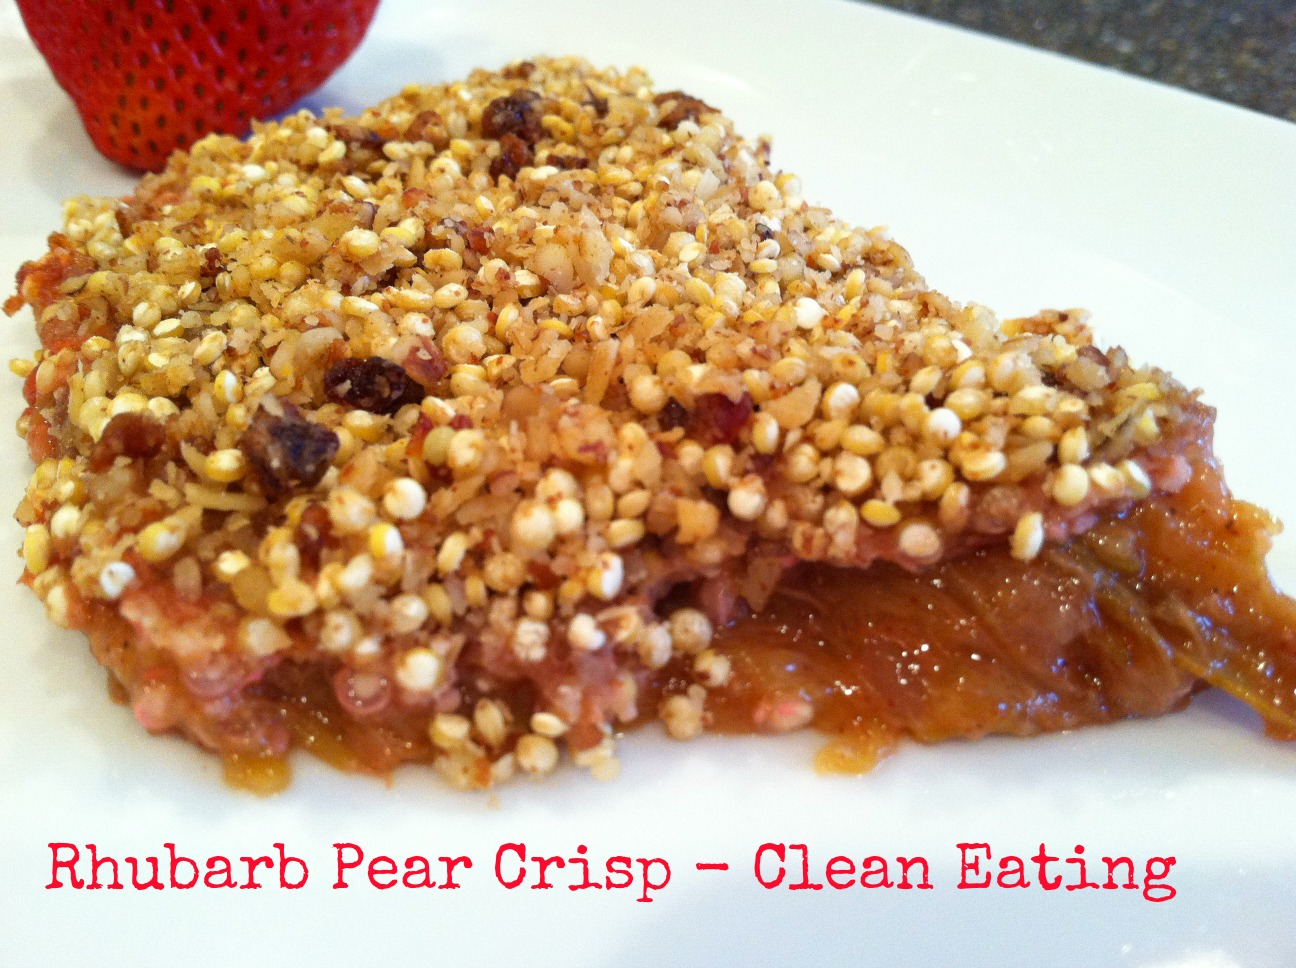 Rhubarb Pear Crisp – Clean Eating – The Chocolate Bottle